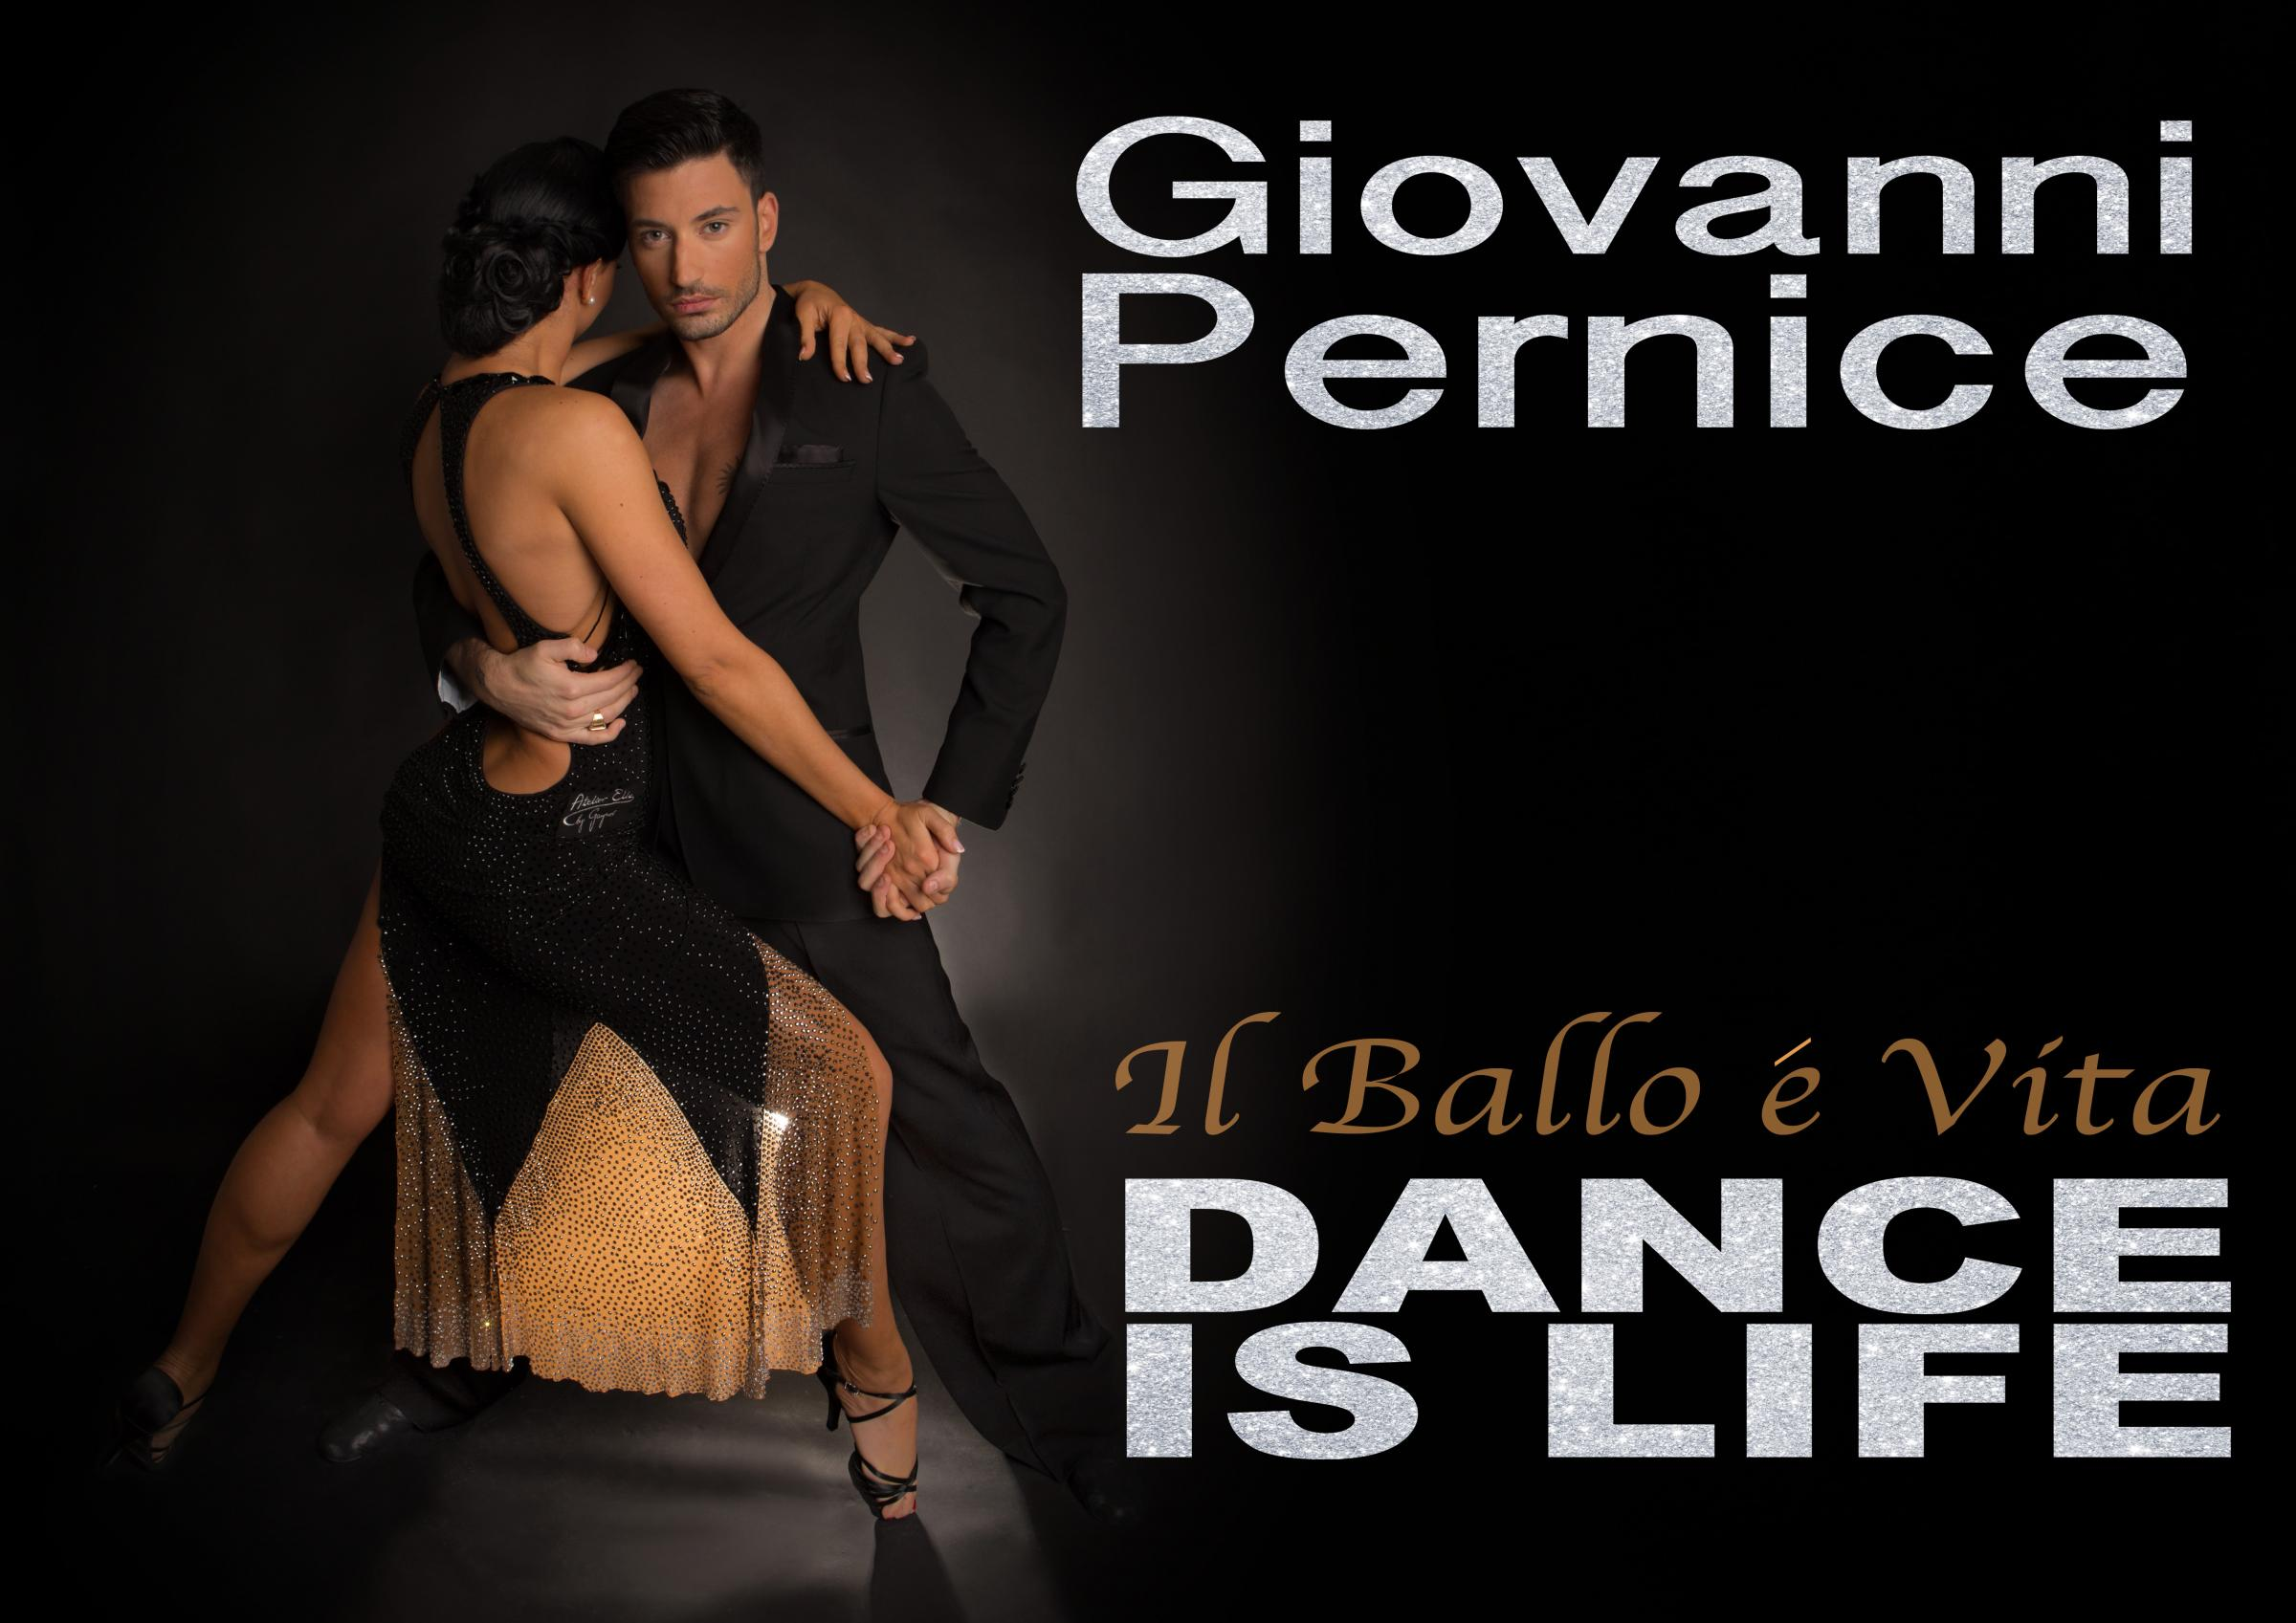 Giovanni Pernice - 'il ballo è vita' (Dance is Life)